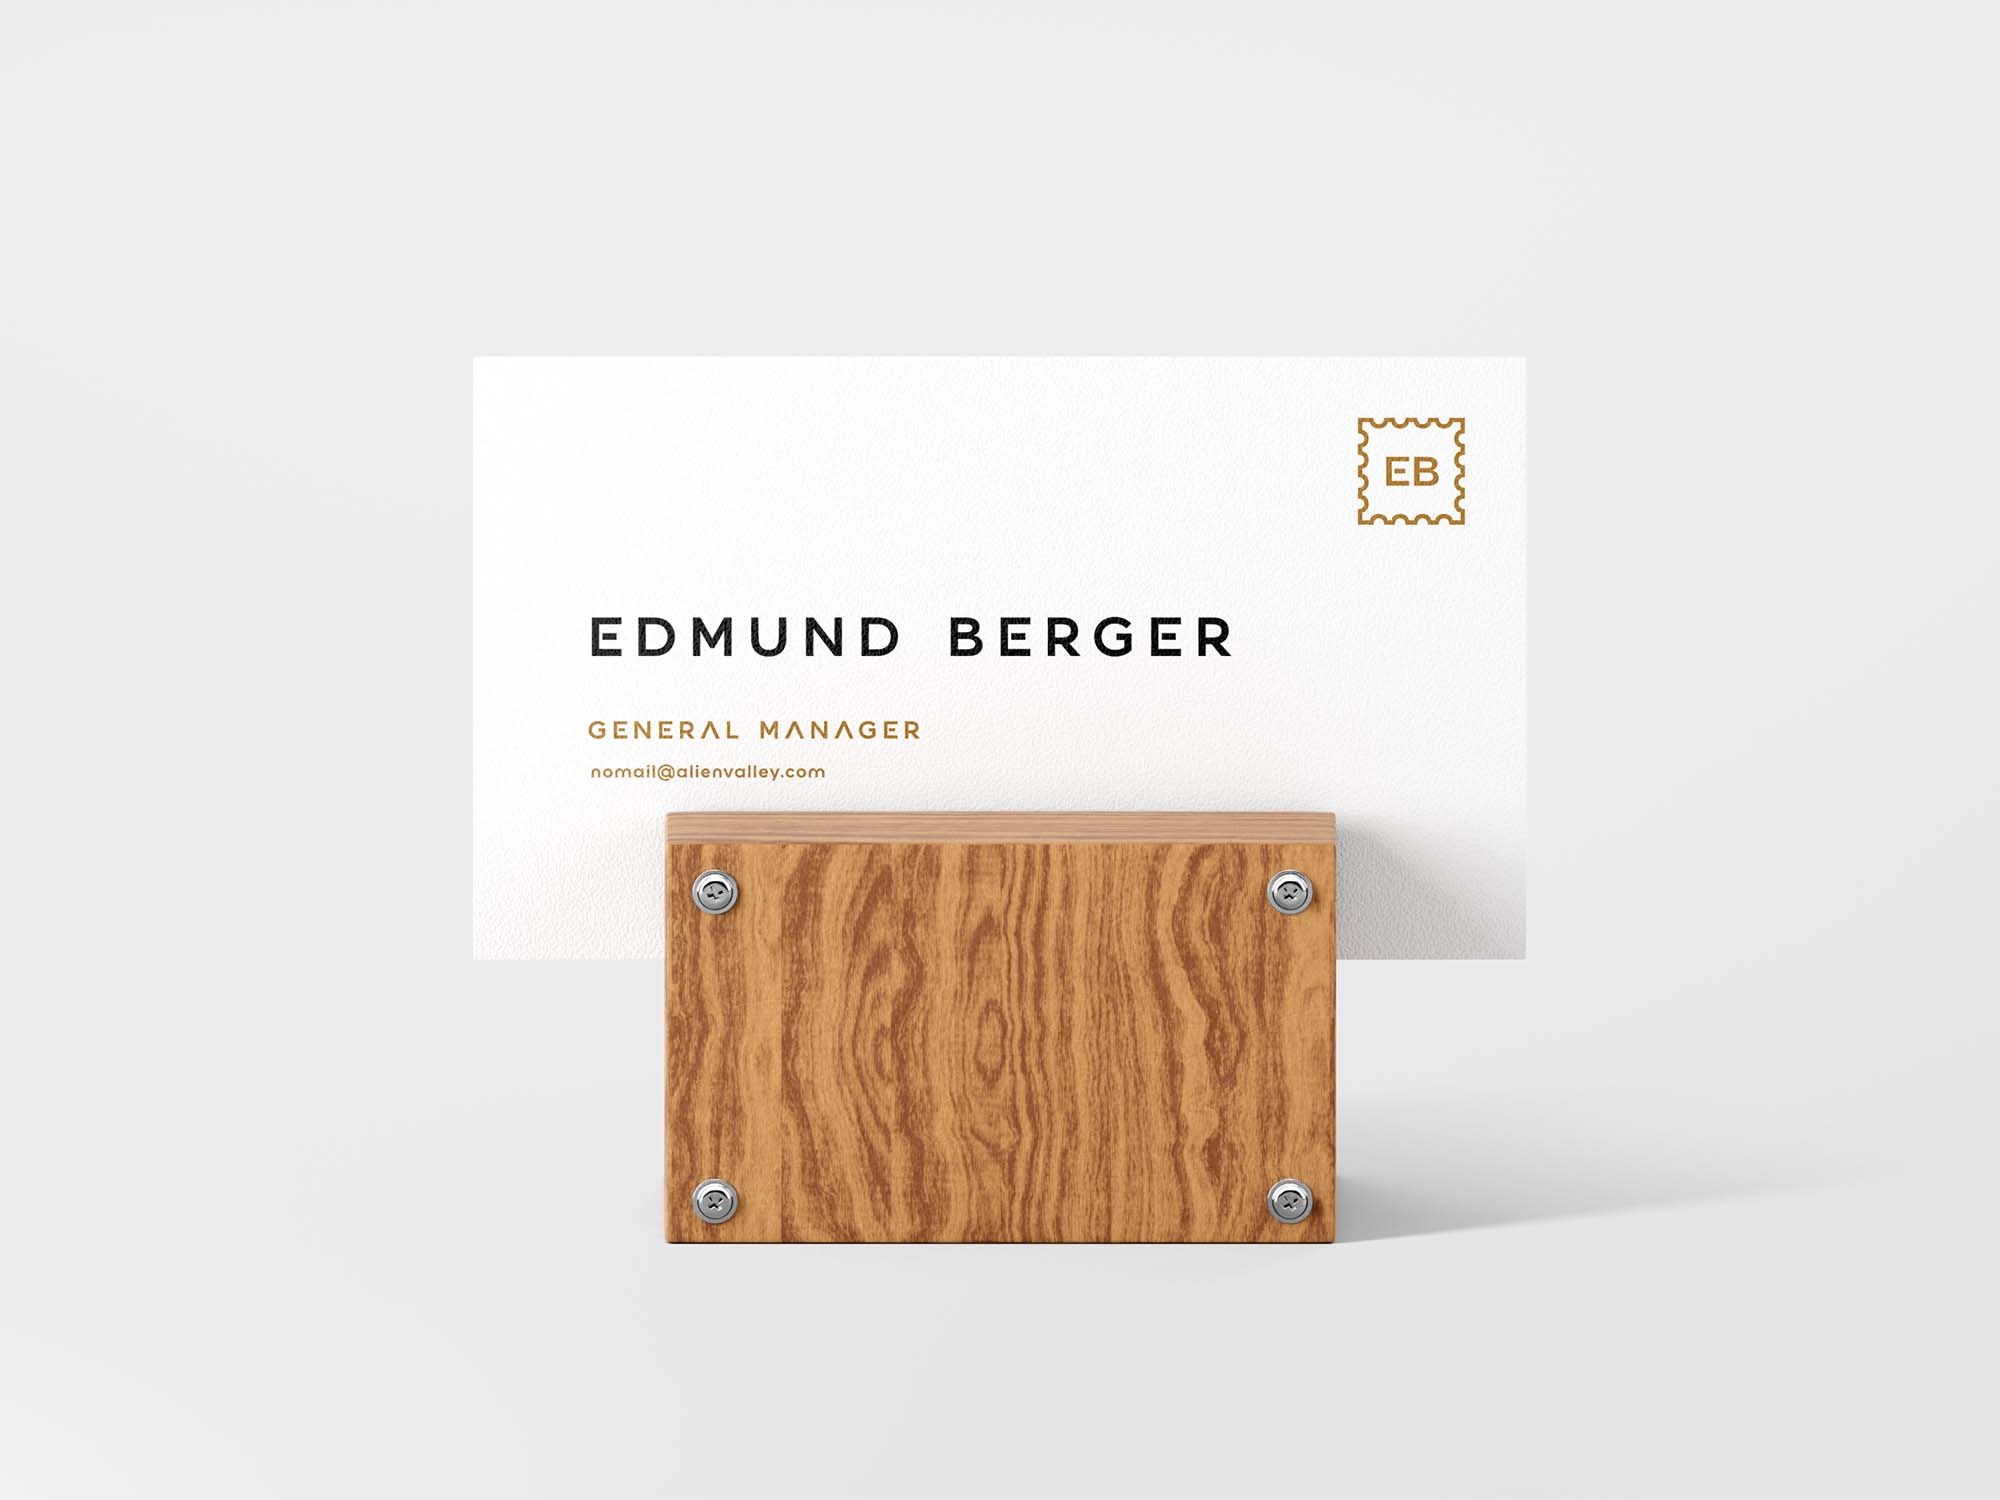 Business Card with Wooden Support Mockup